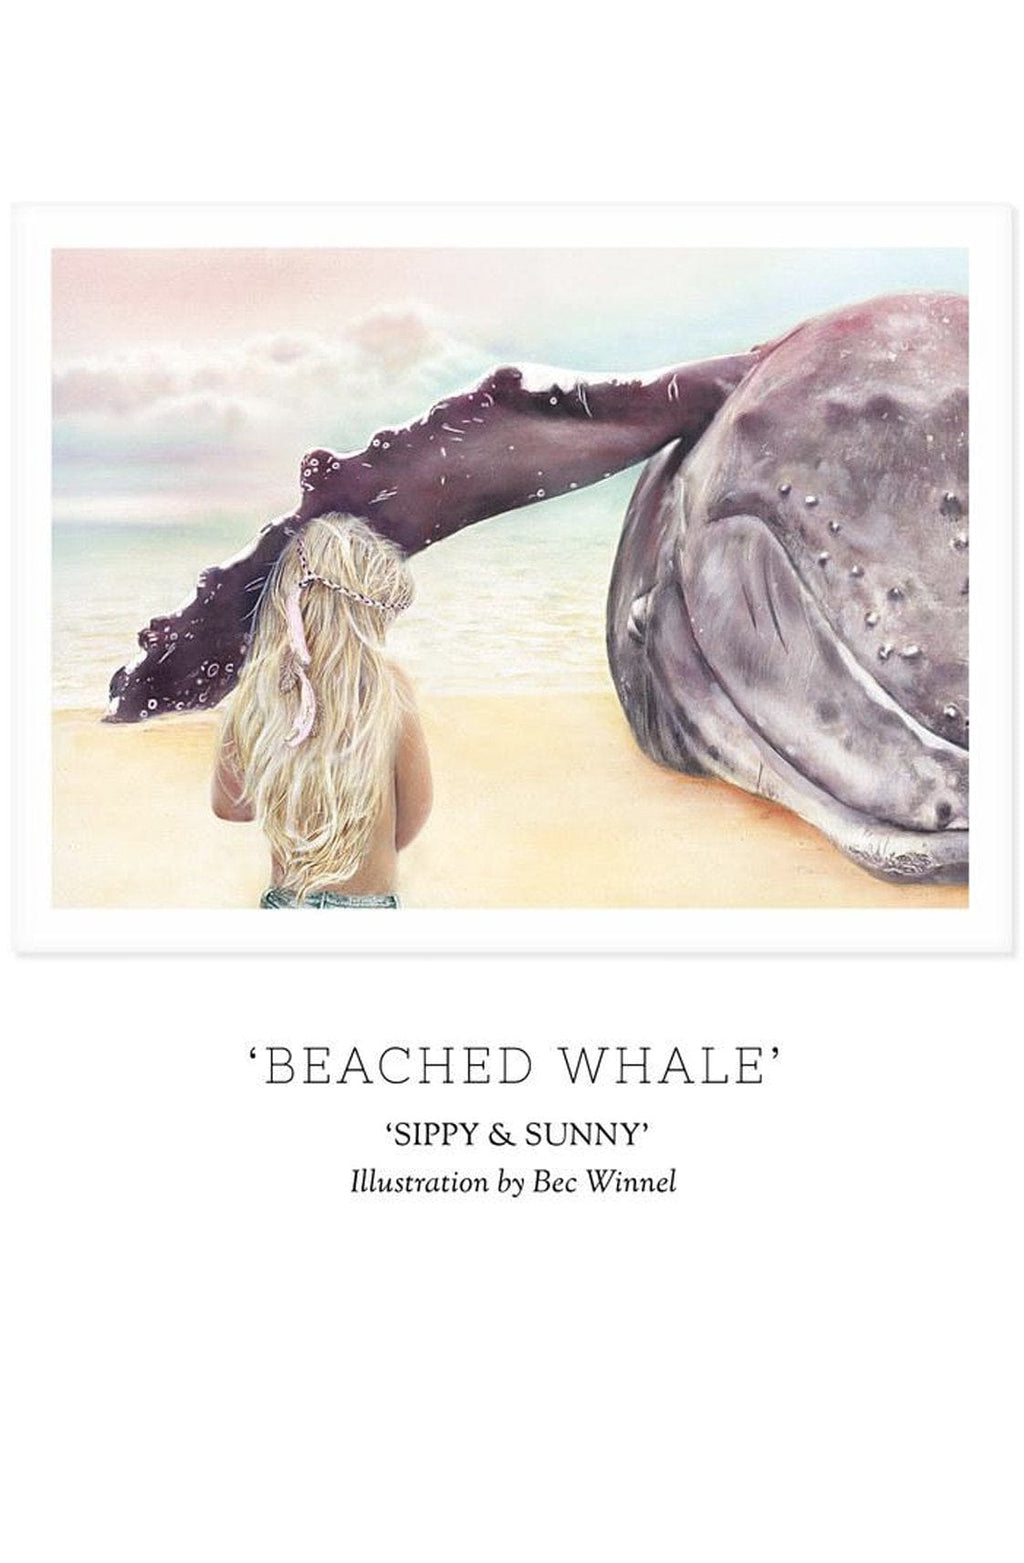 SIPPY & SUNNY - 'BEACHED WHALE' Print